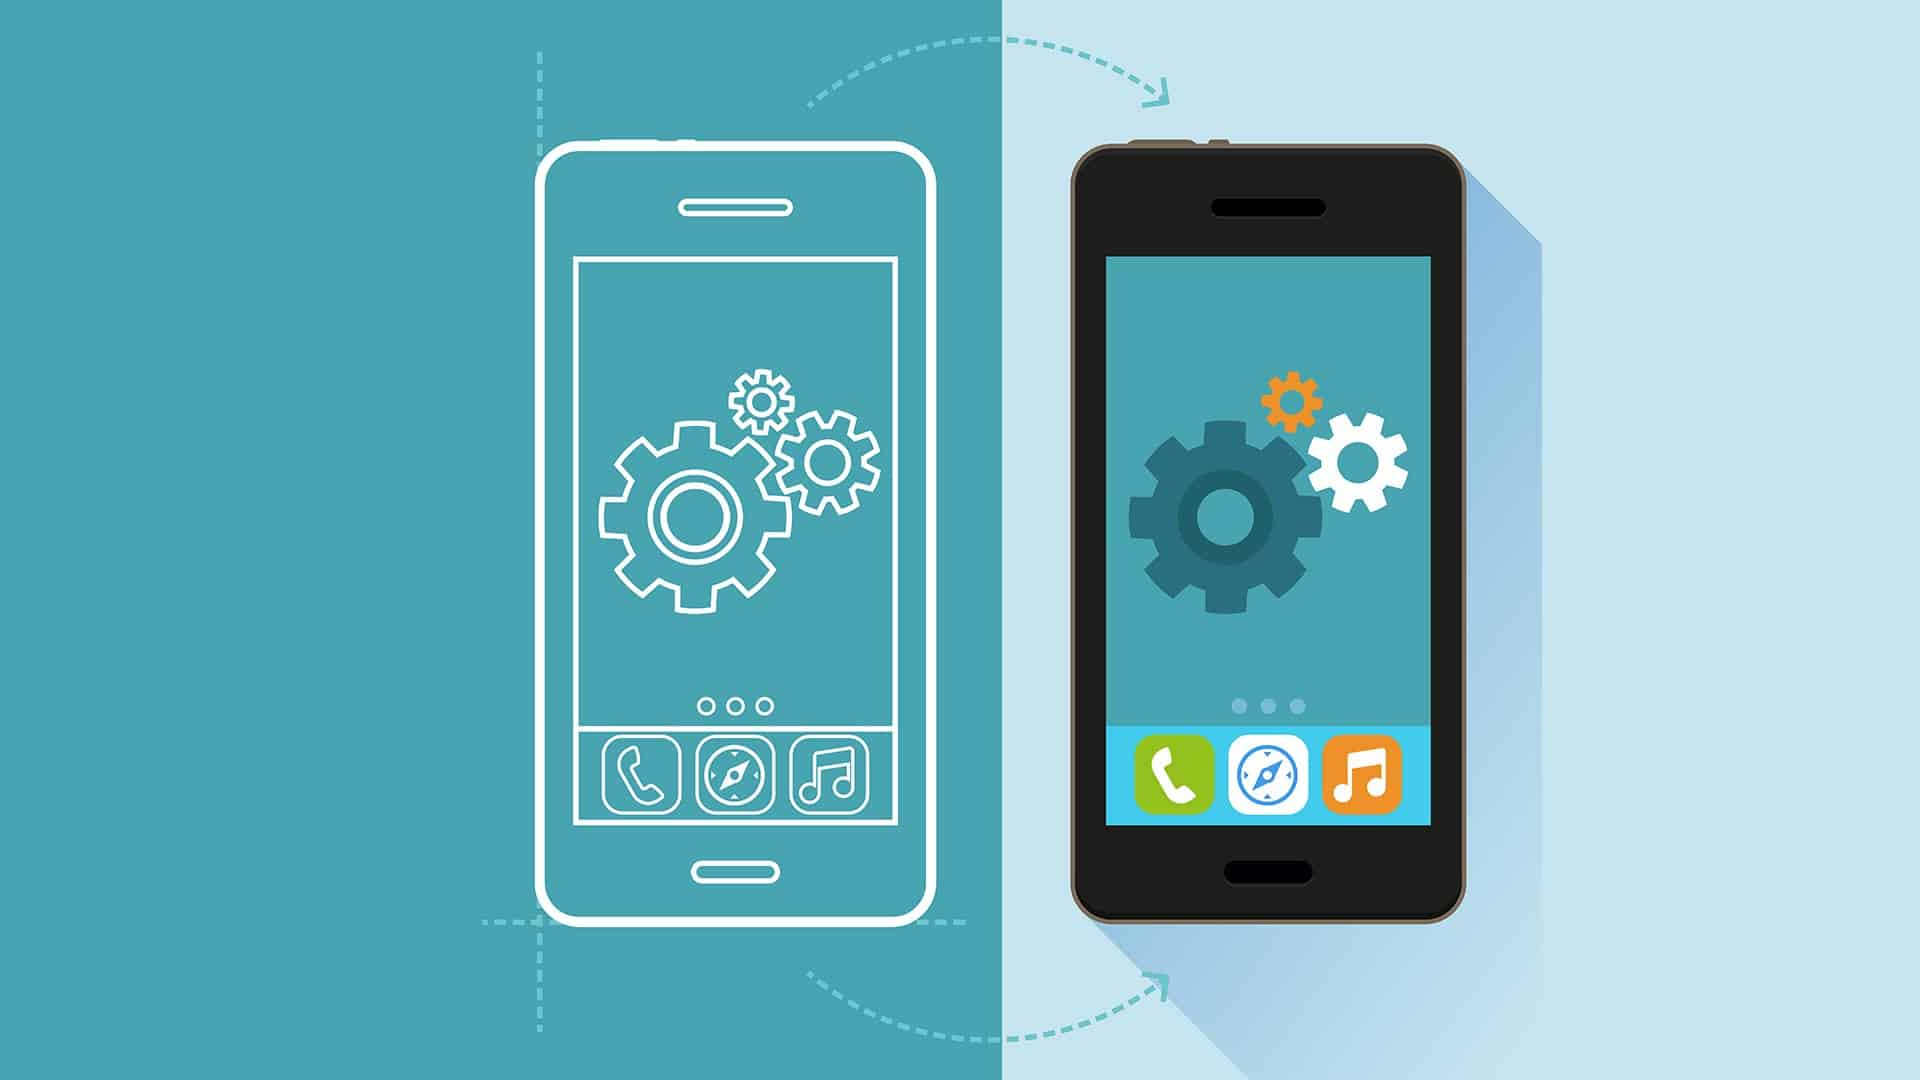 10 Awesome Mobile UX Design Strategies That Work